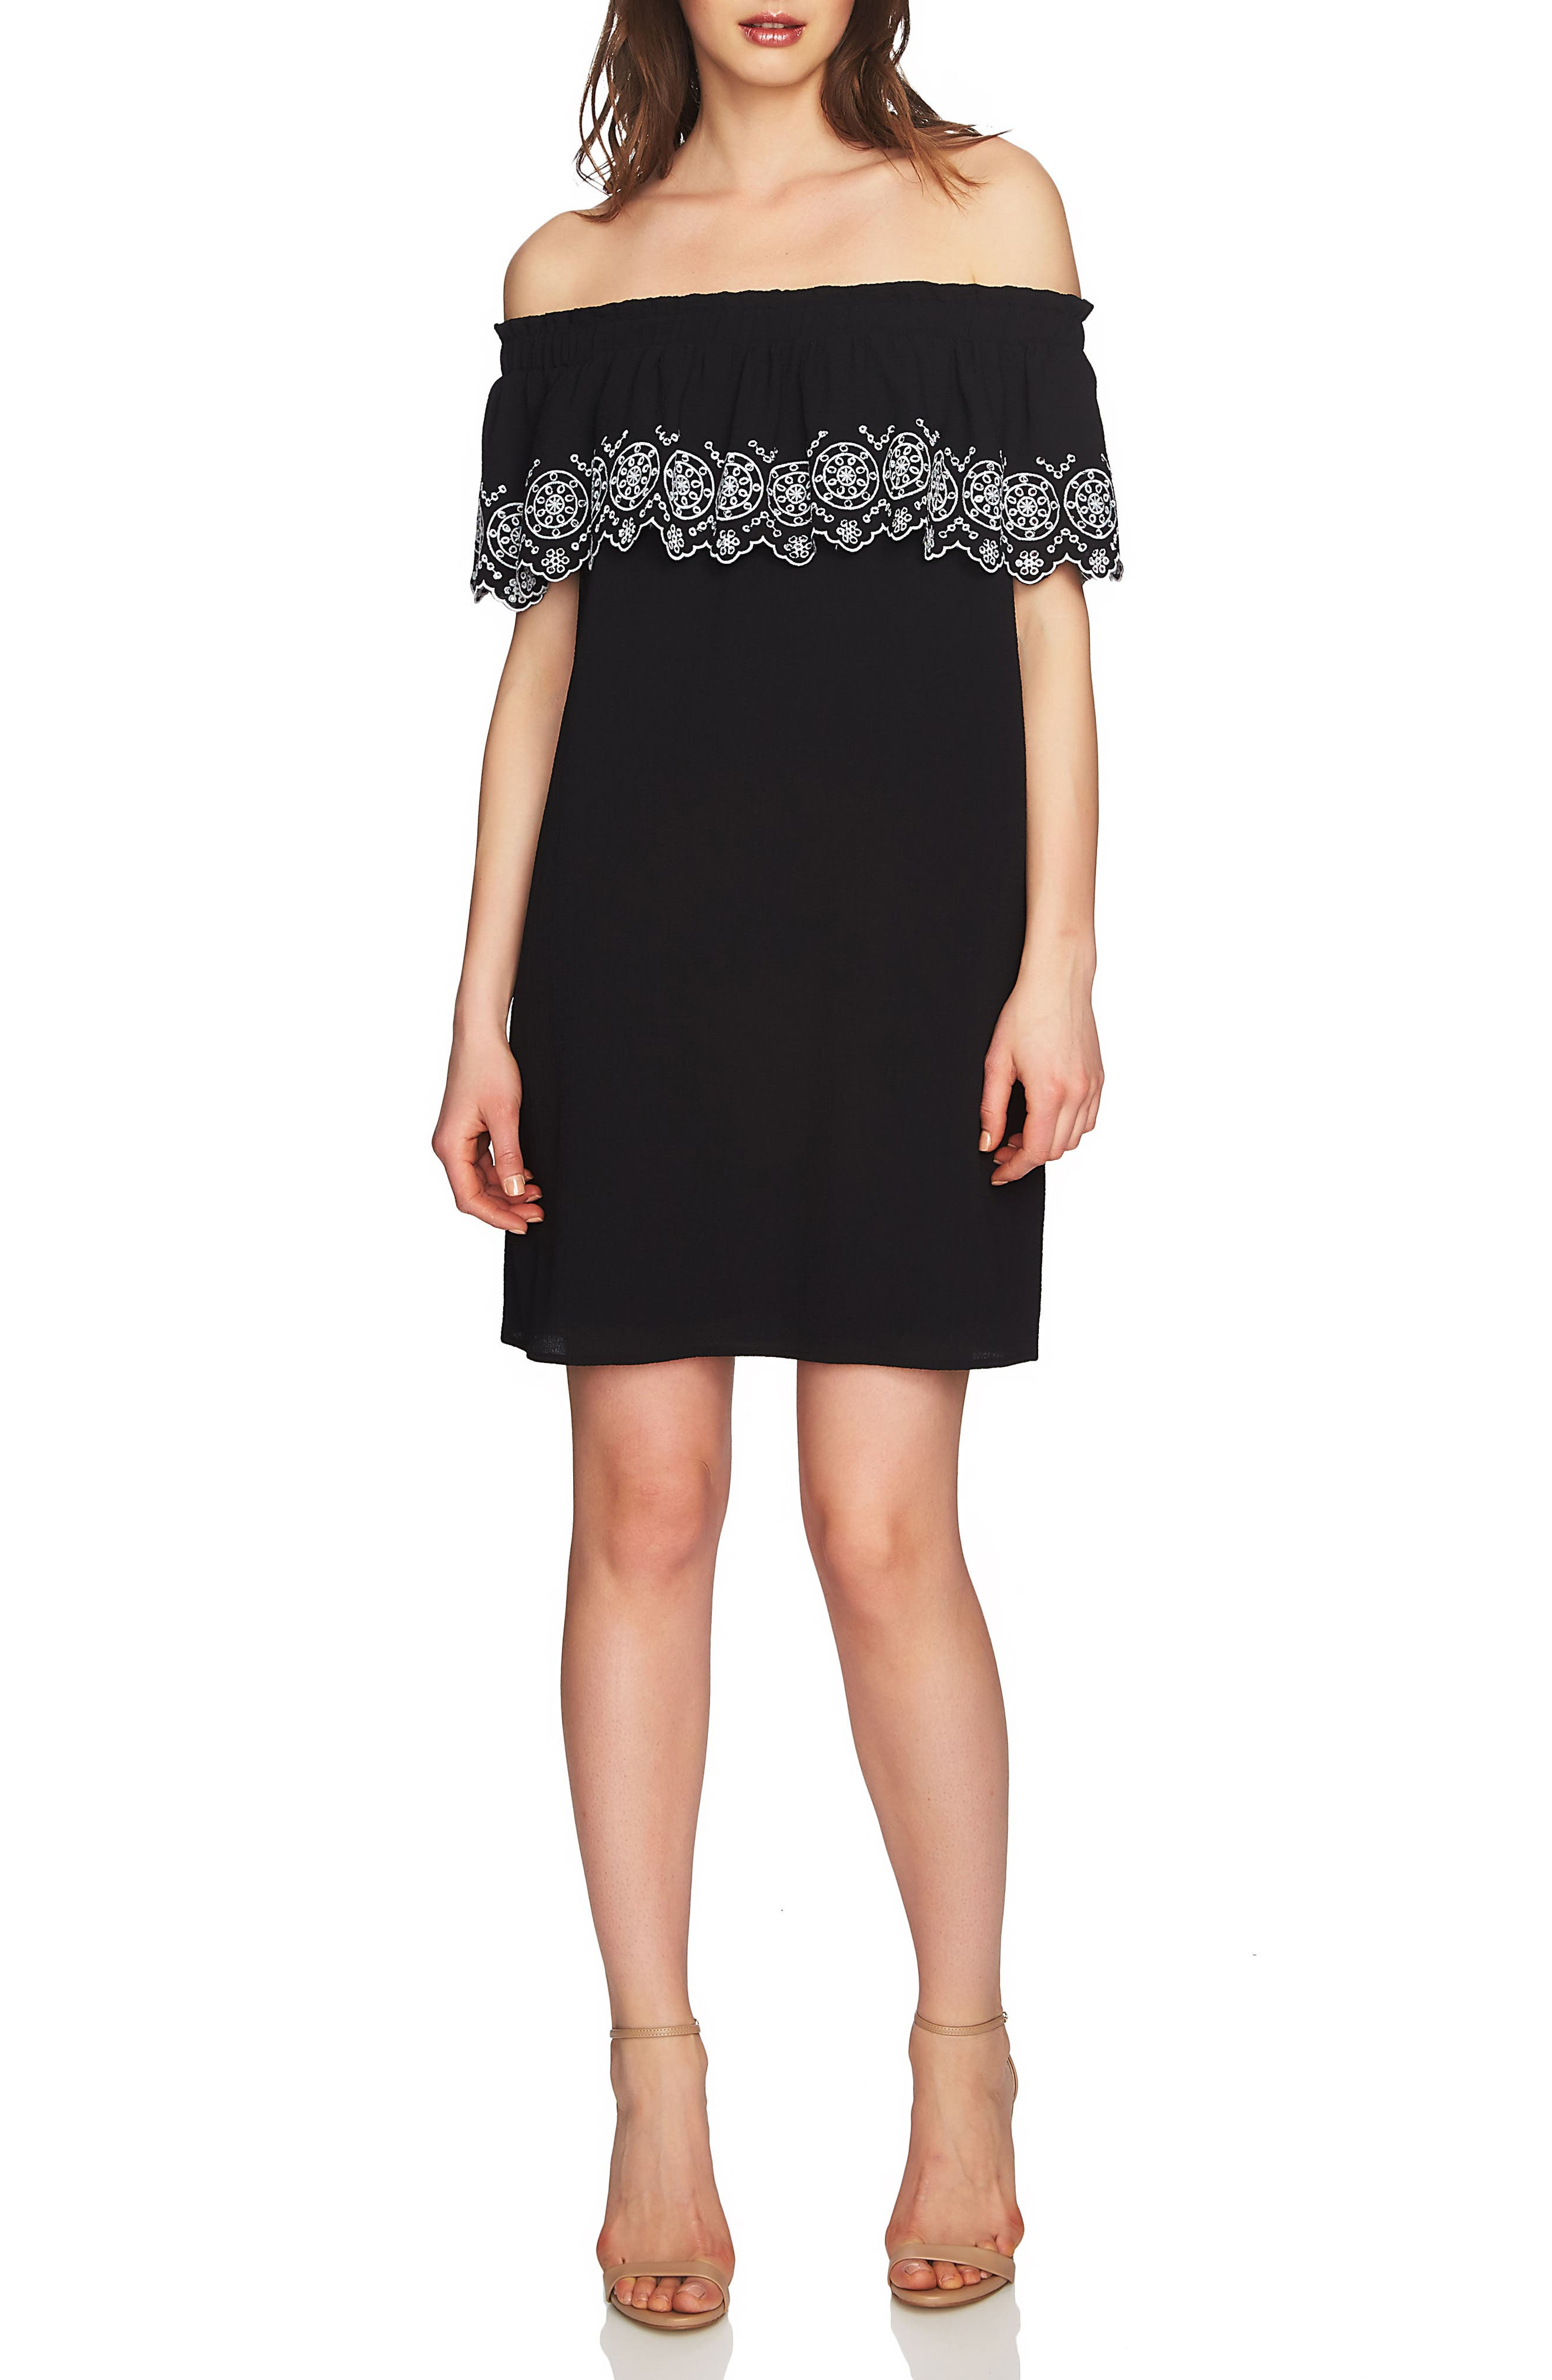 Tenley Off the Shoulder Embroidered Dress,                         Main,                         color, Rich Black